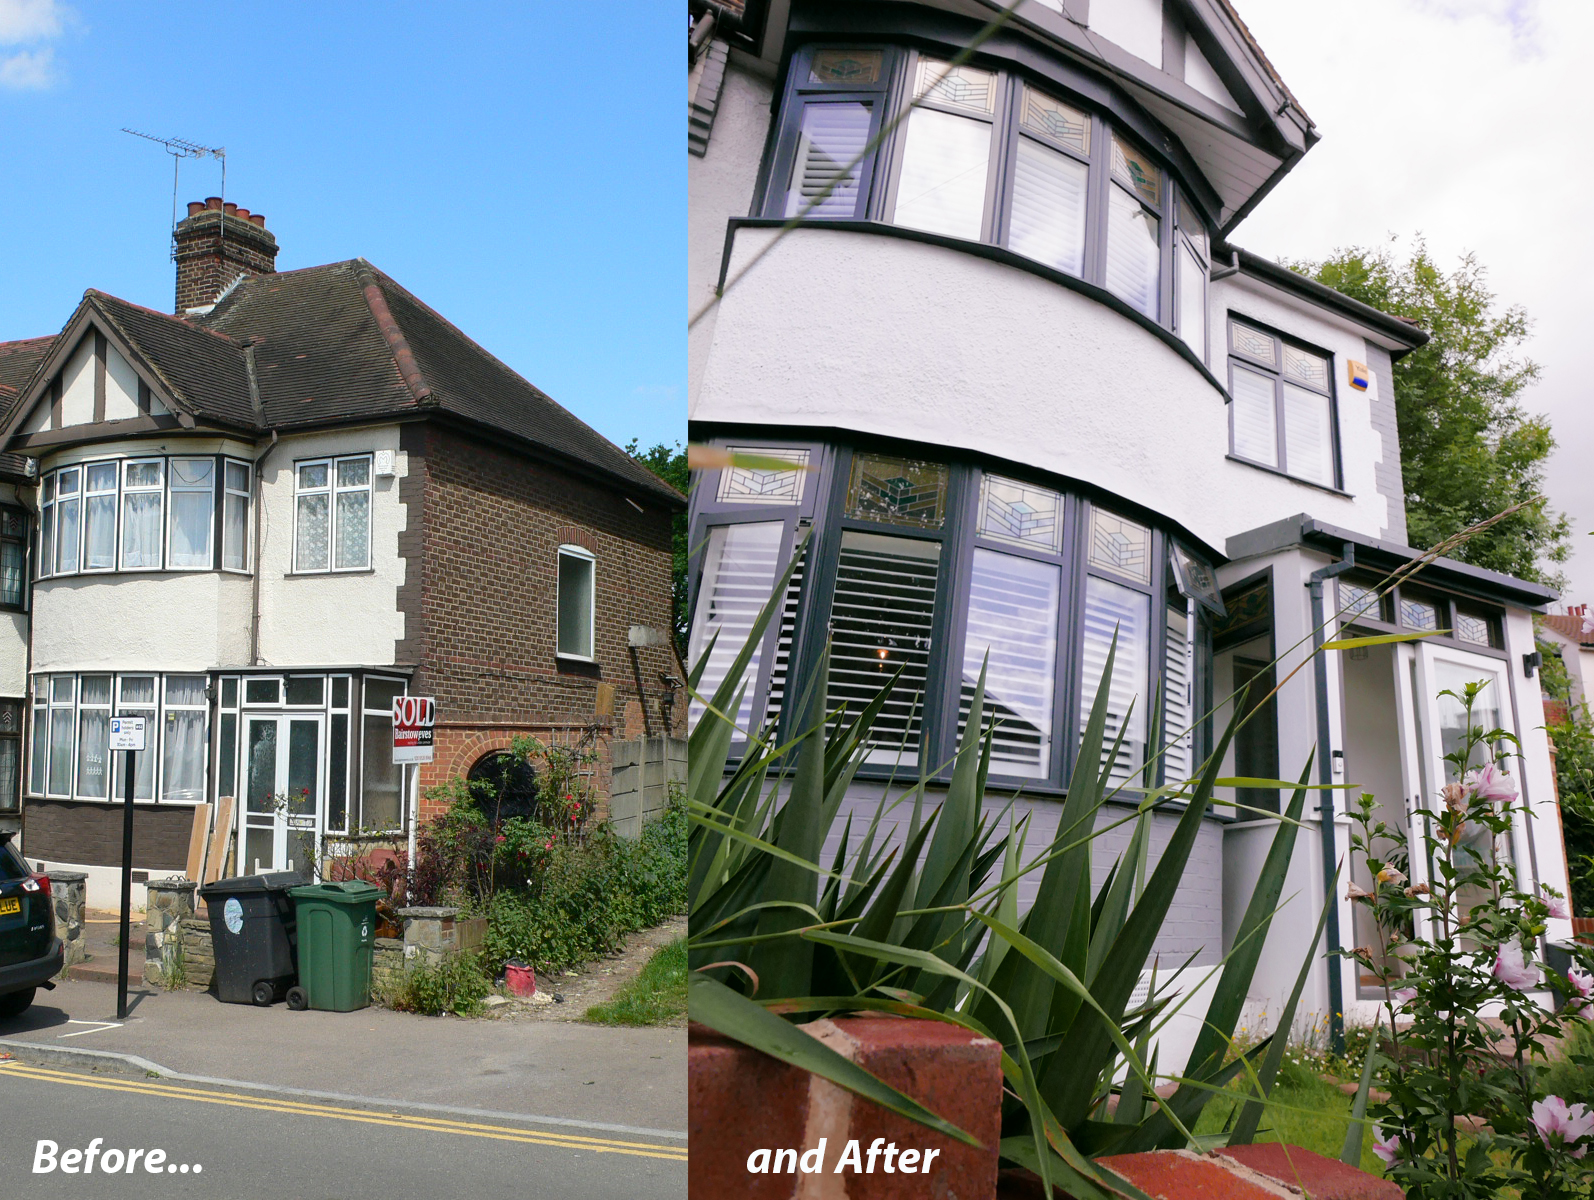 SW082_before and after 2.jpg